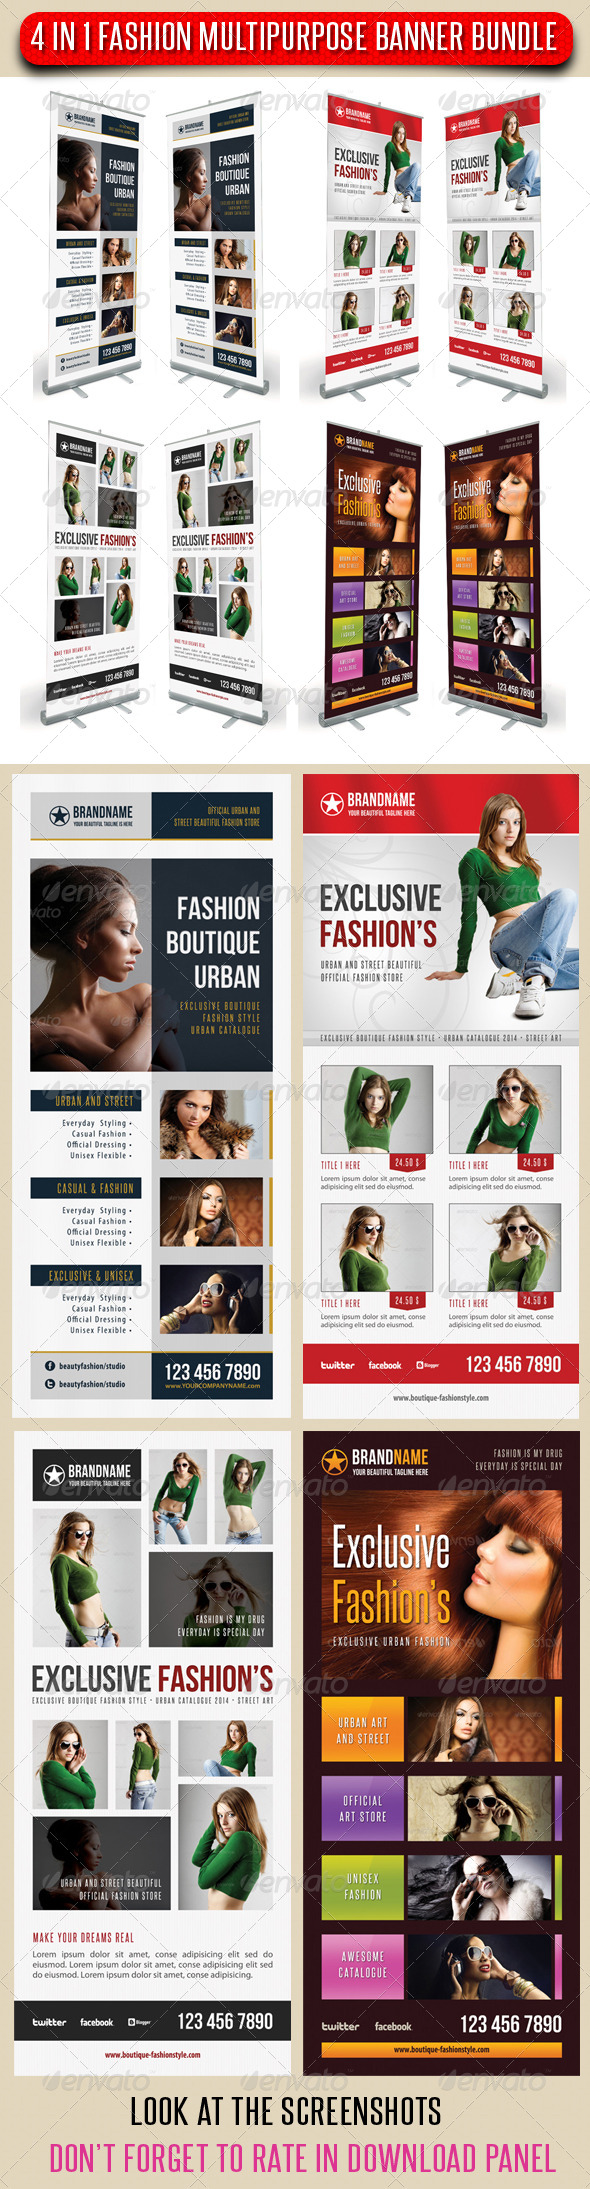 GraphicRiver 4 in 1 Fashion Multipurpose Banner Bundle 08 7052916